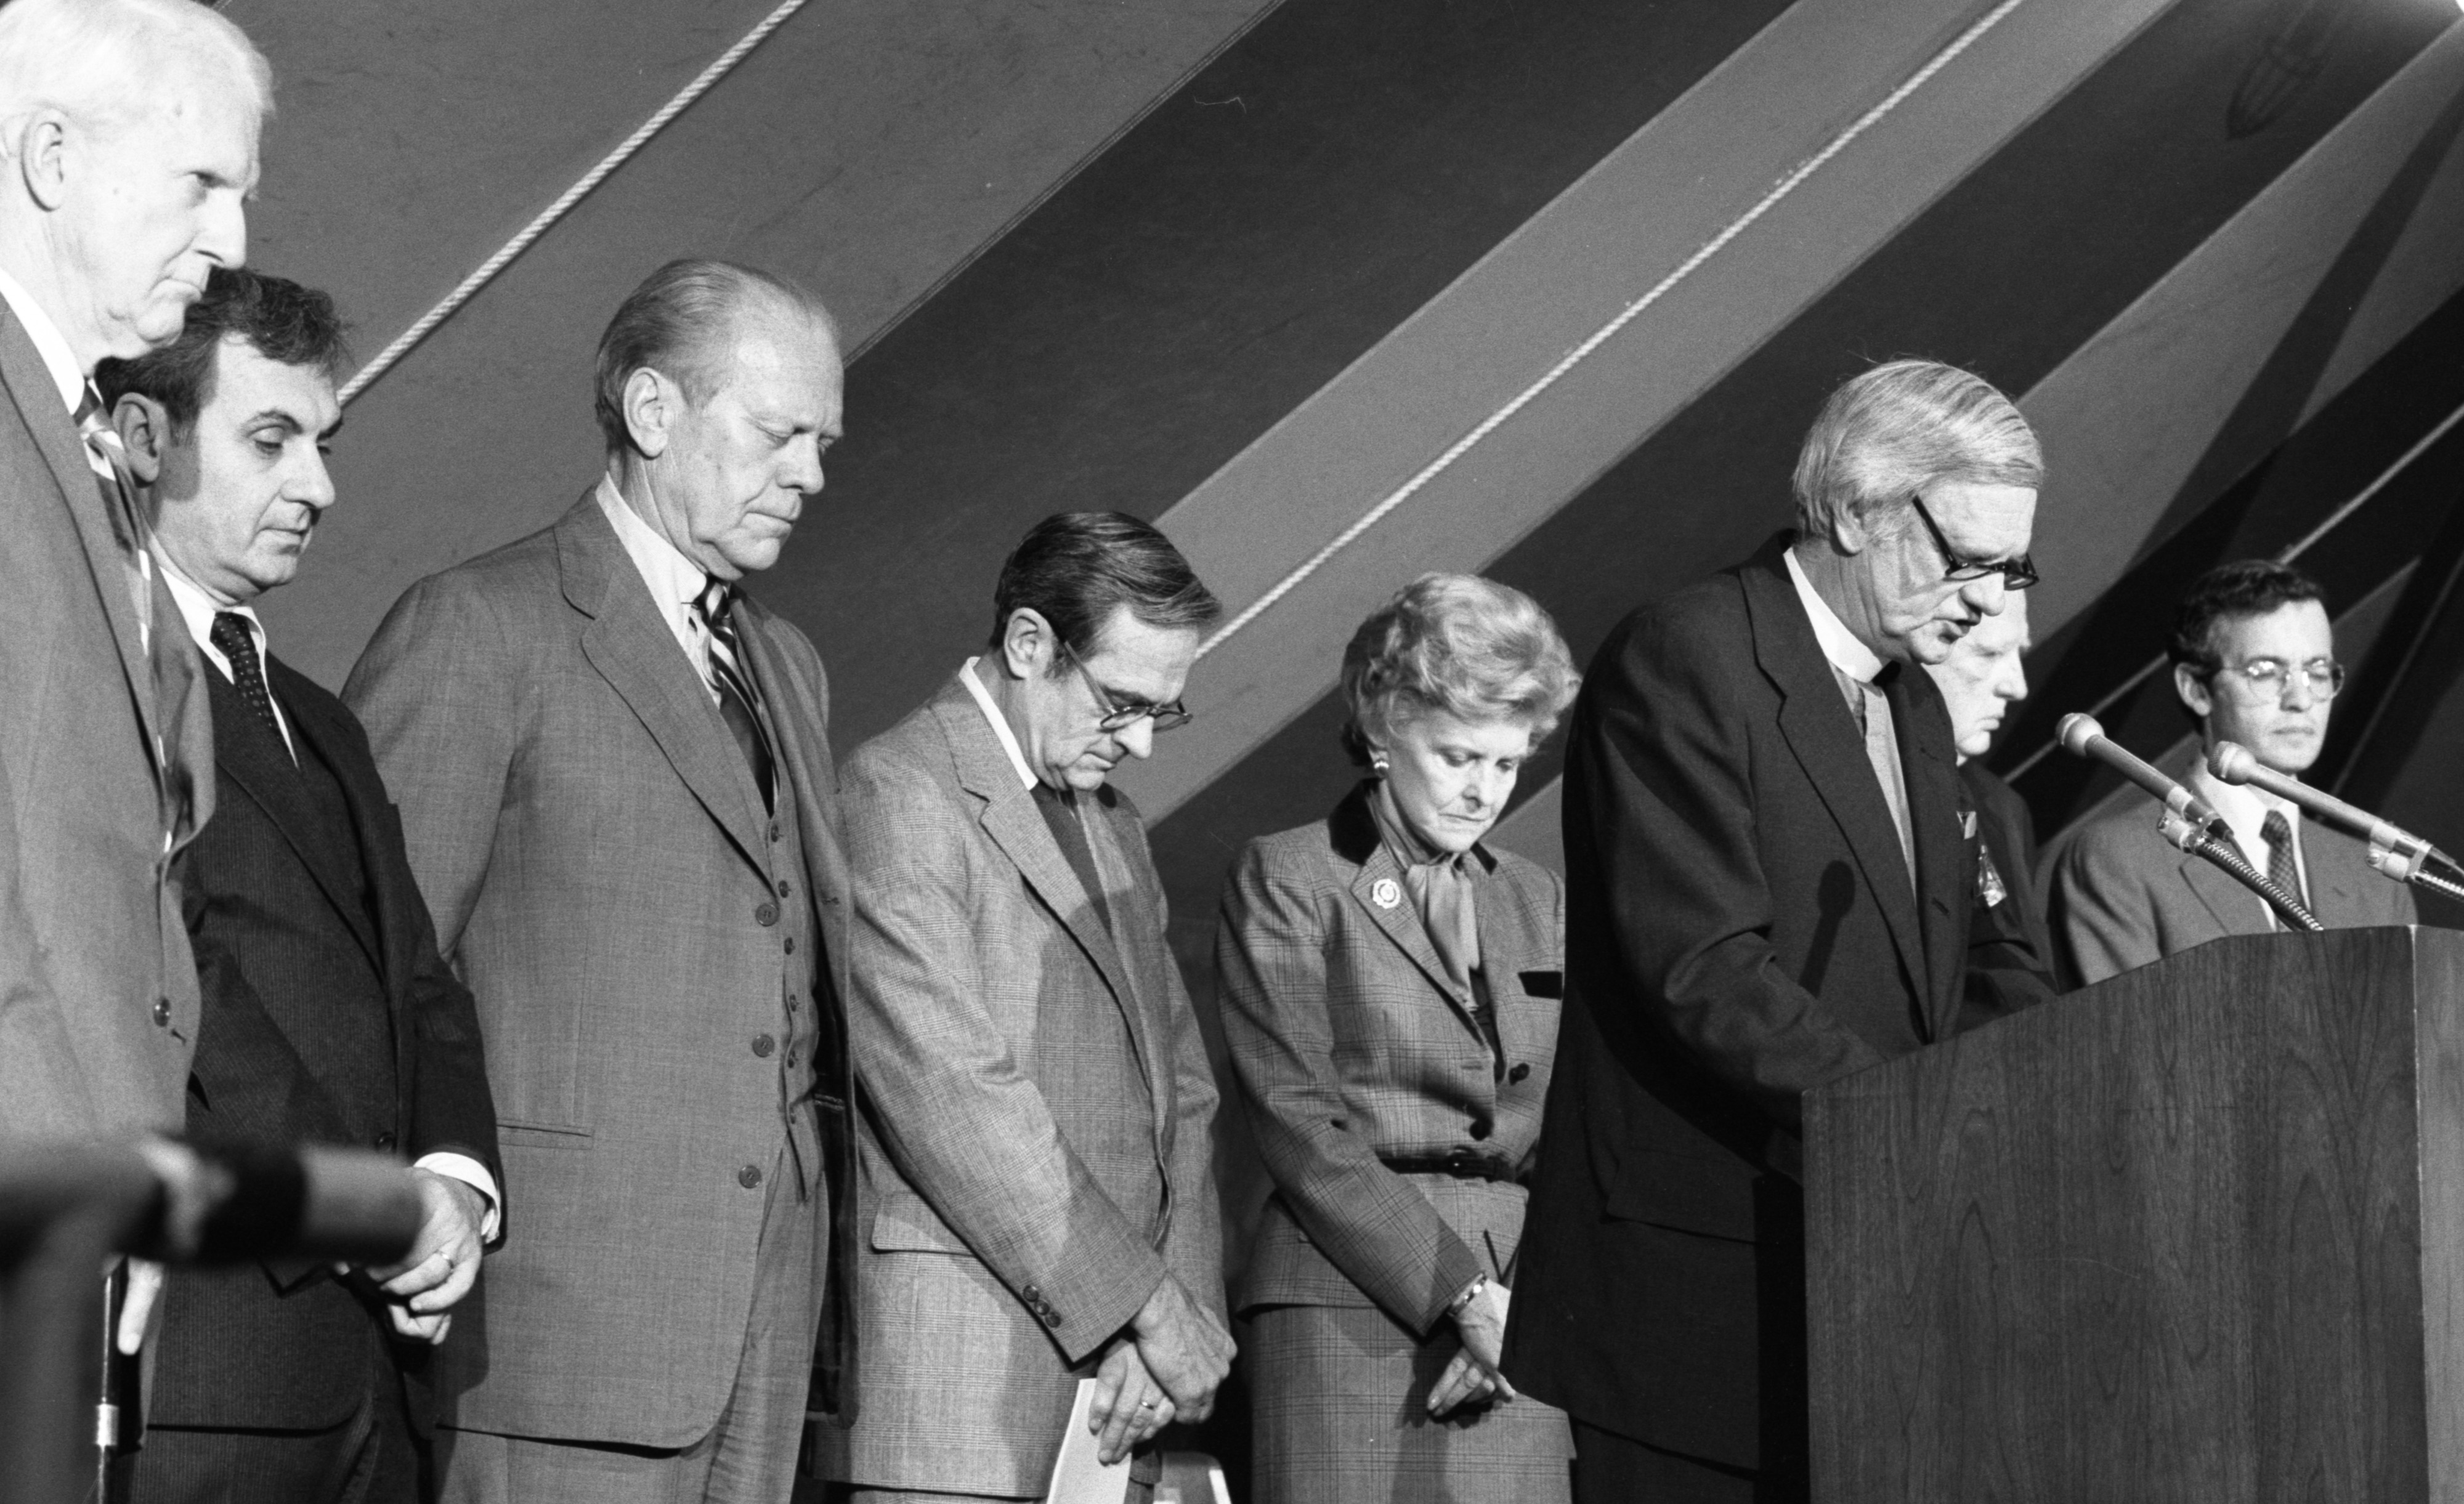 Dedication of the Gerald R. Ford Presidential Library, April 1981 image